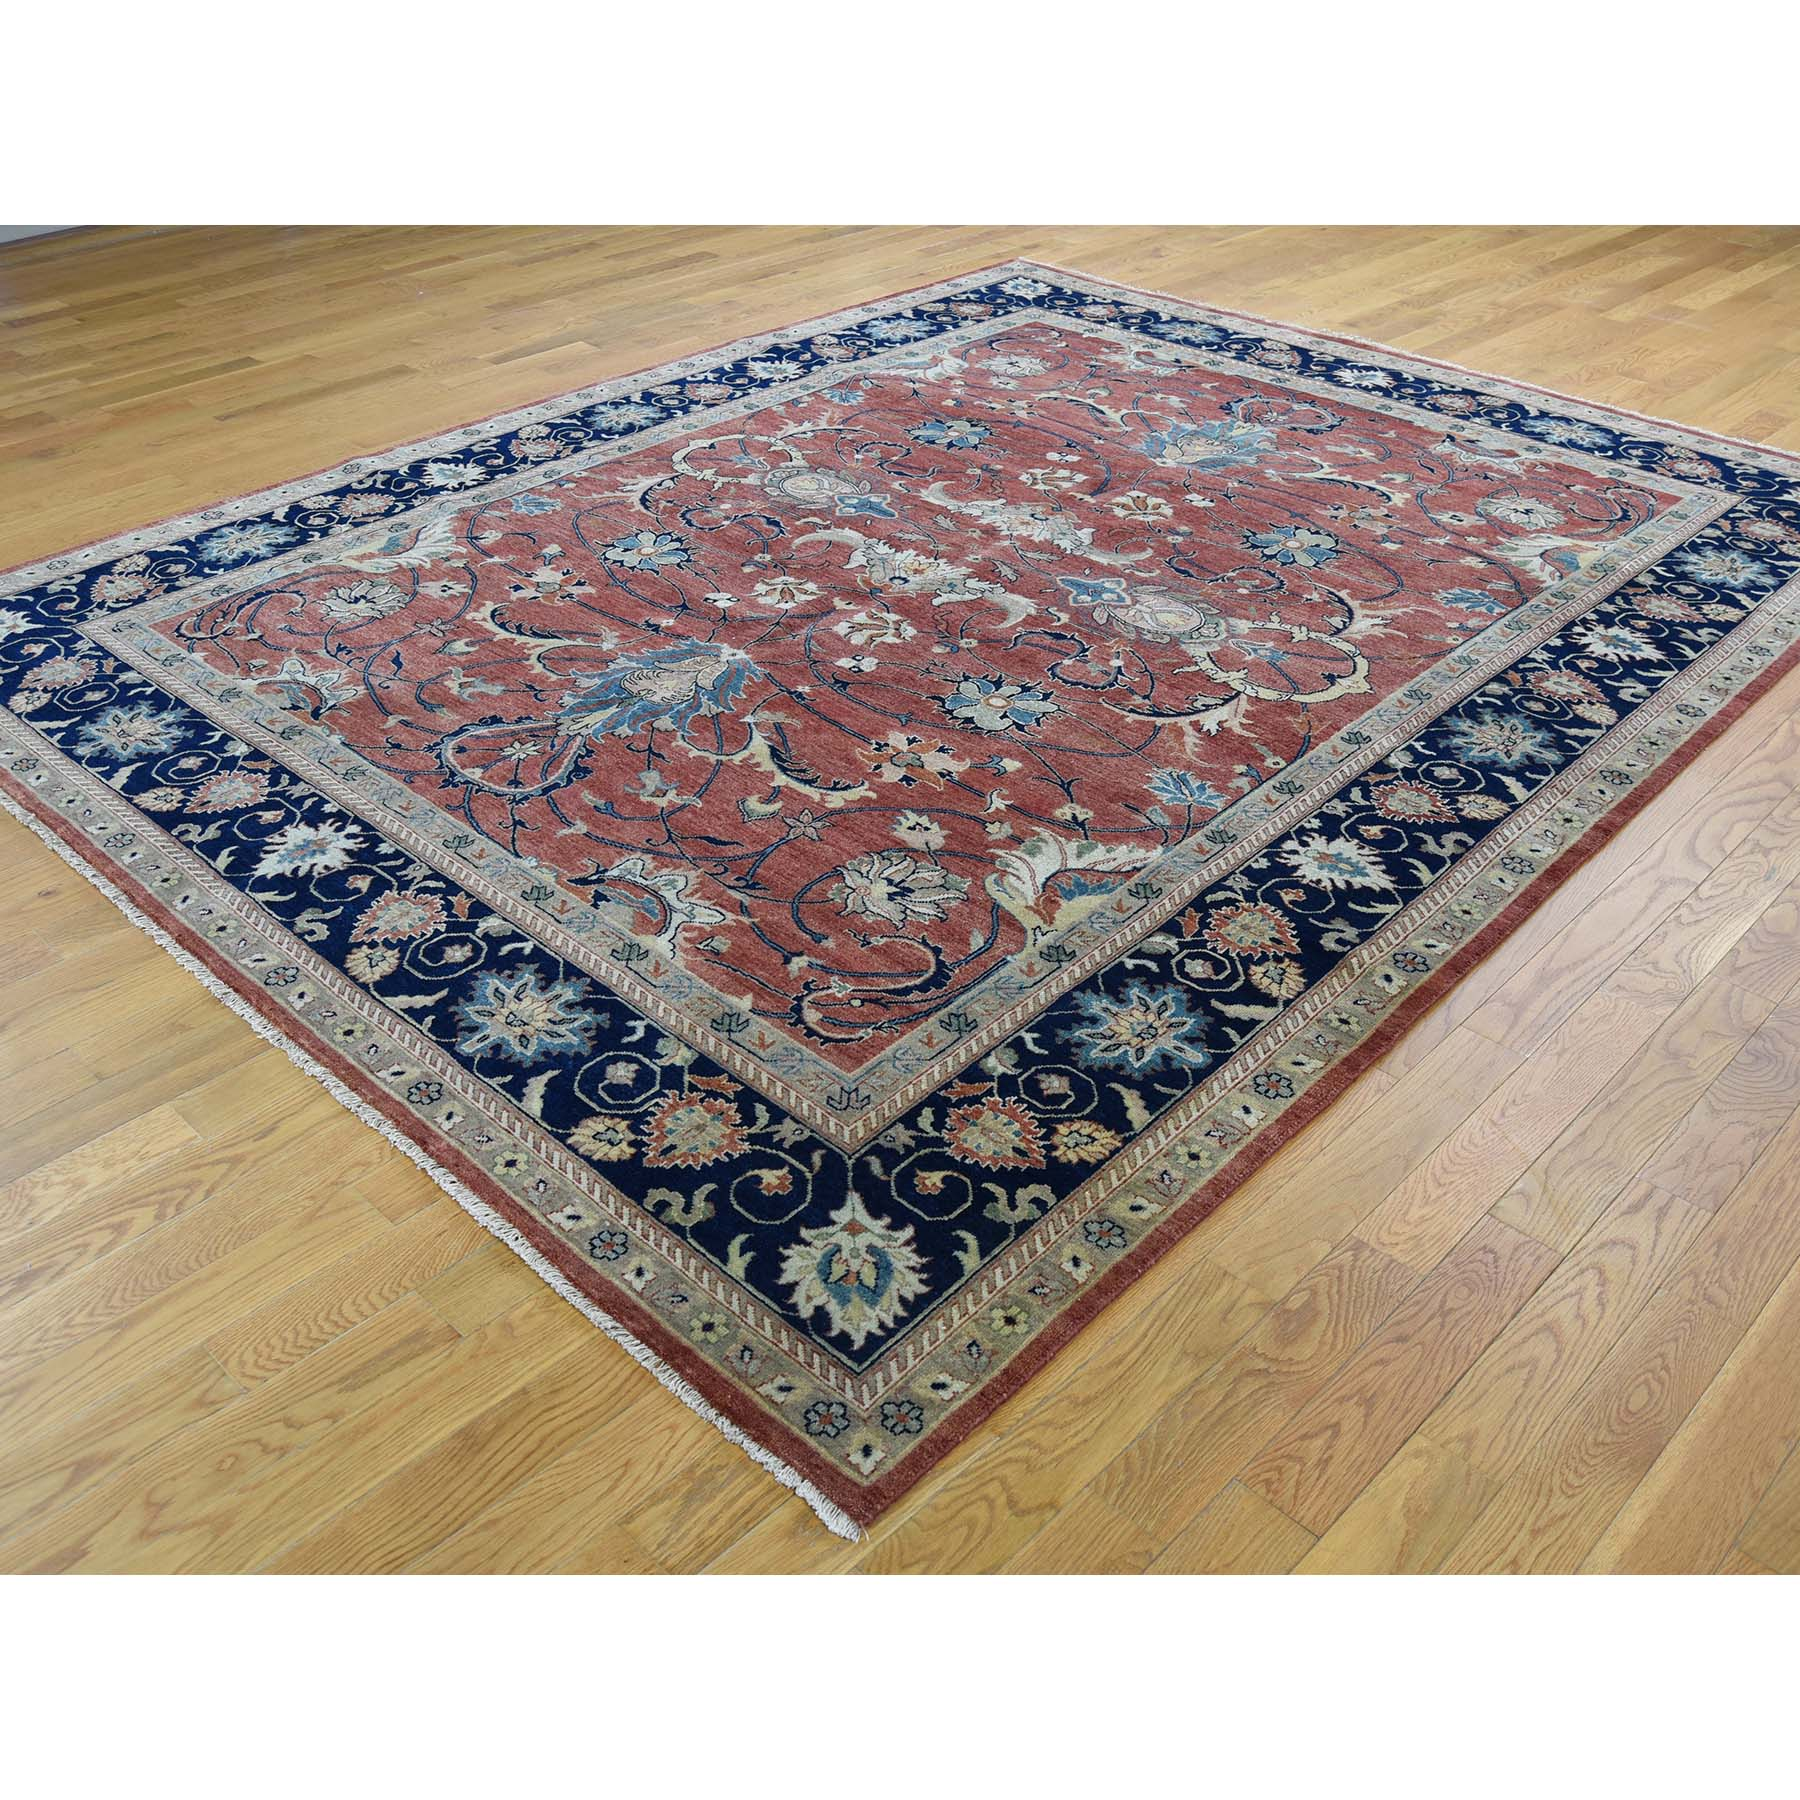 8-x10- Antiqued Heriz Re-Creation All Over Design Hand-Knotted Rug